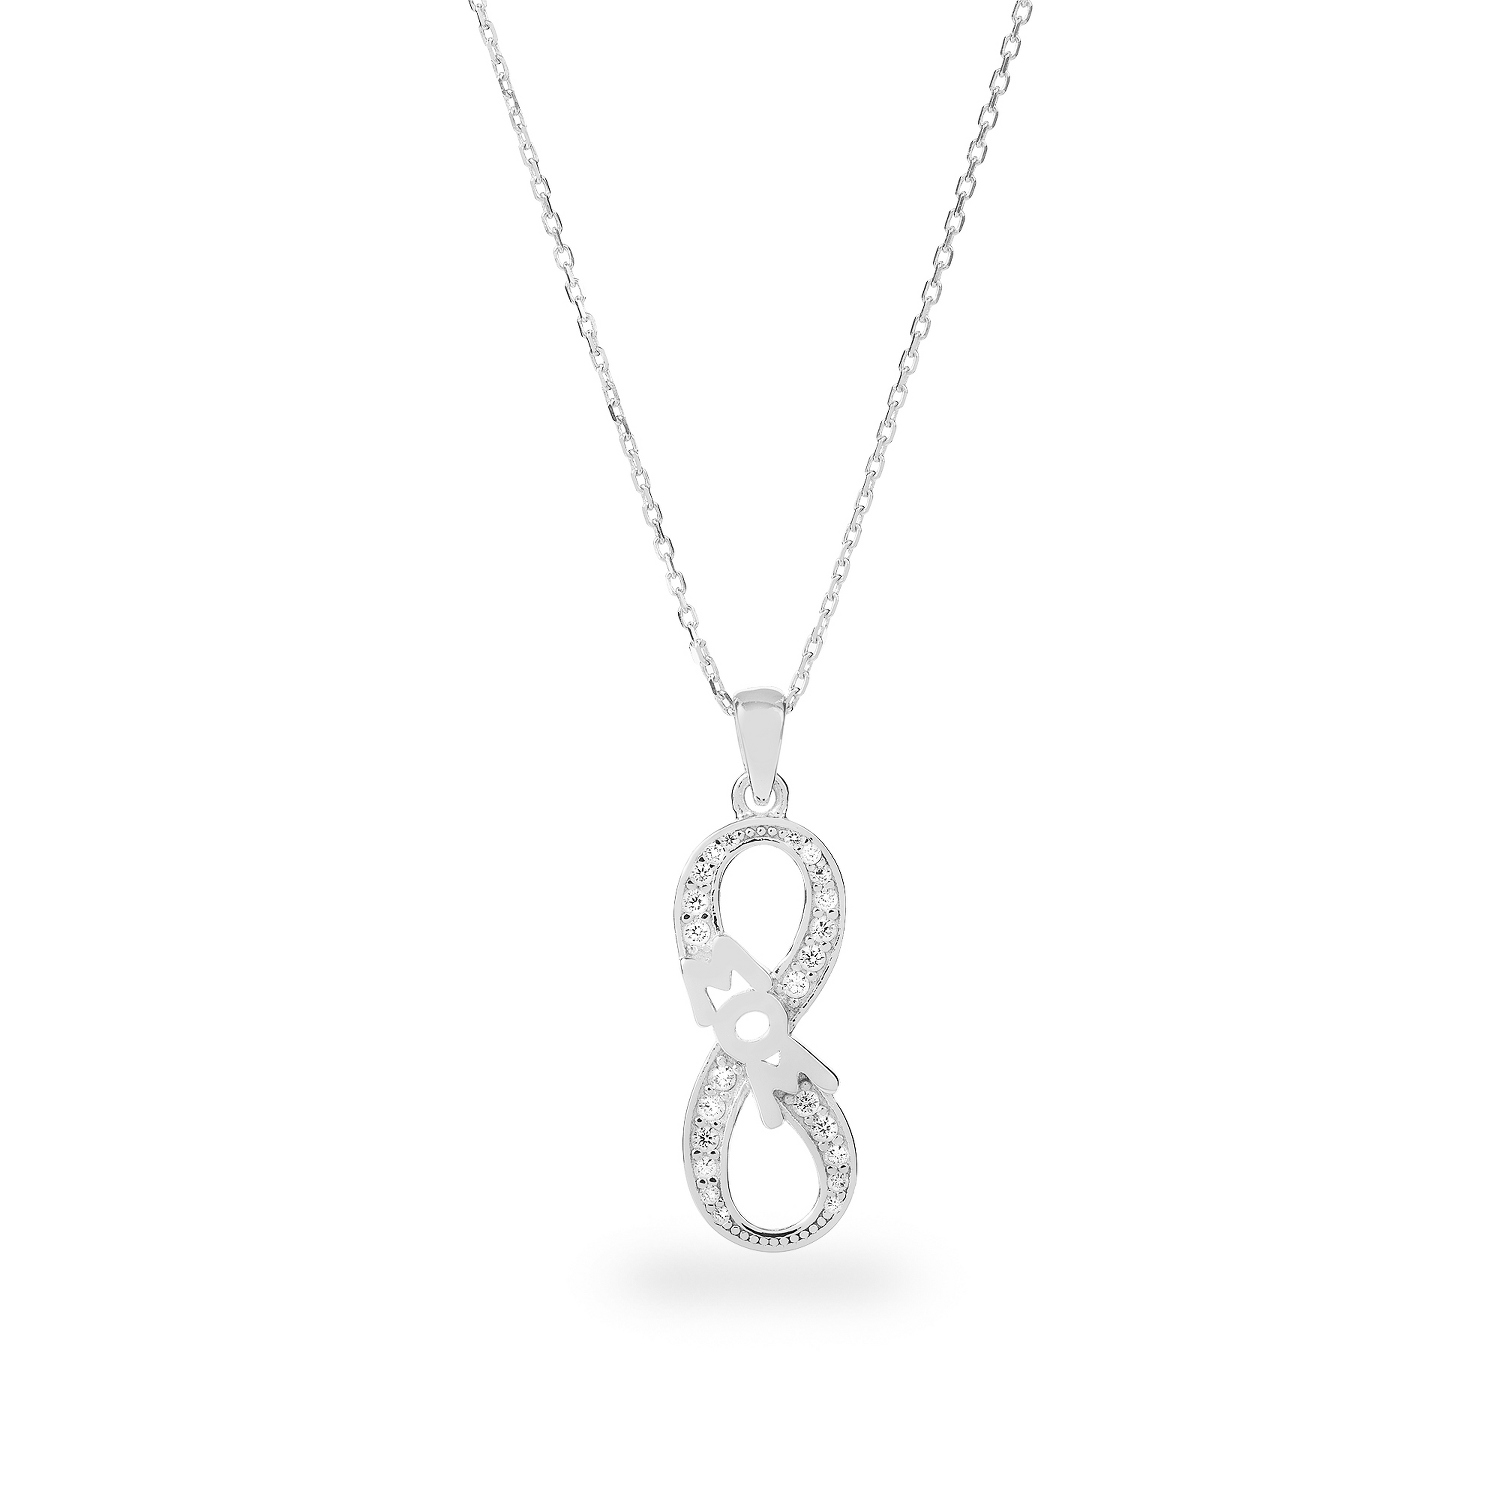 necklace inches infinity sterling jewelry dp sign silver pendant com amazon